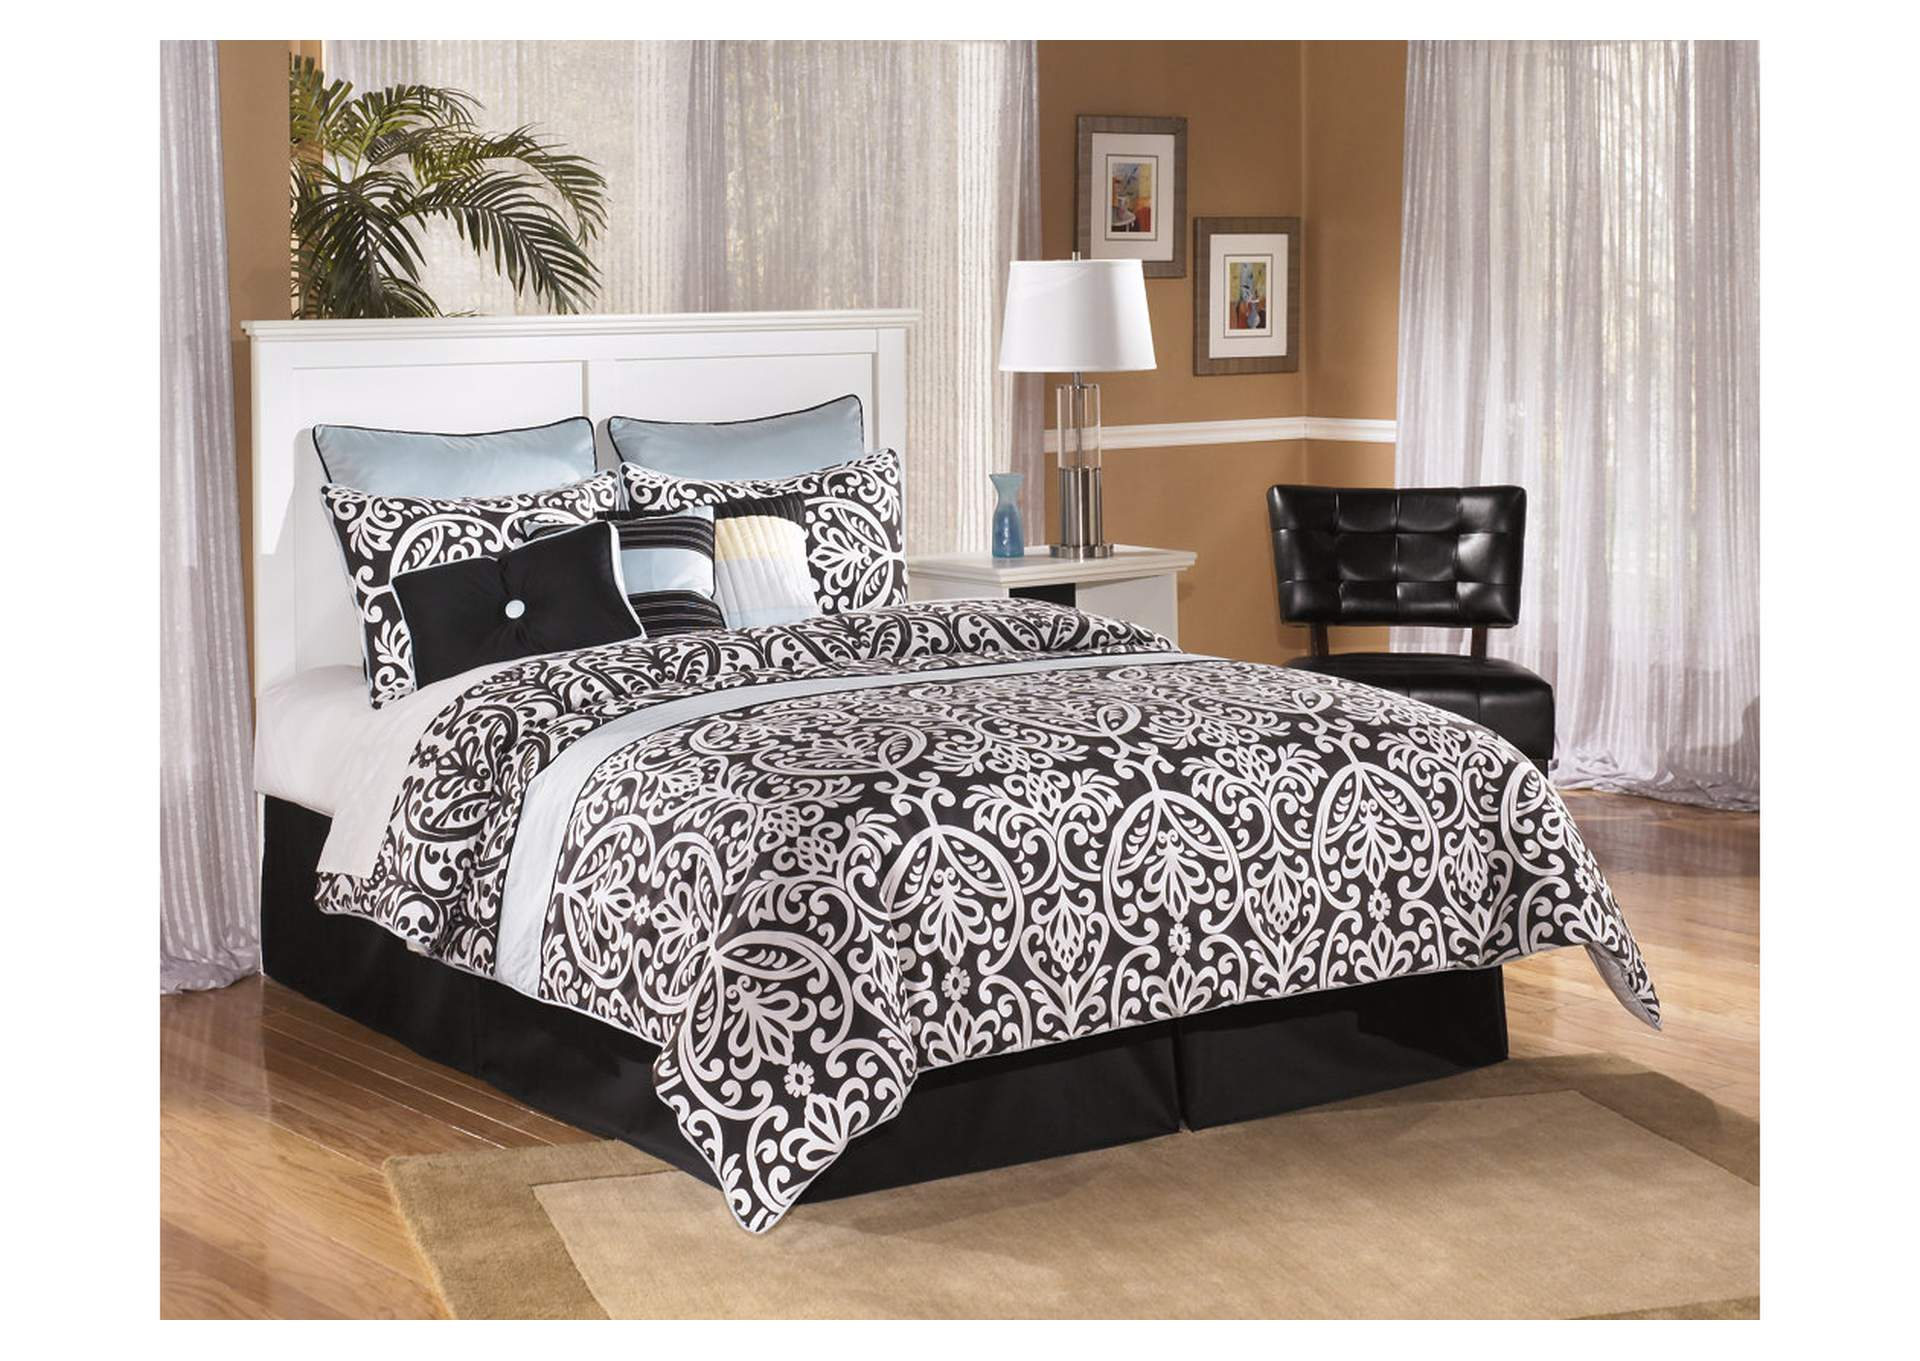 Bostwick Shoals Queen/Full Panel Headboard,Signature Design By Ashley